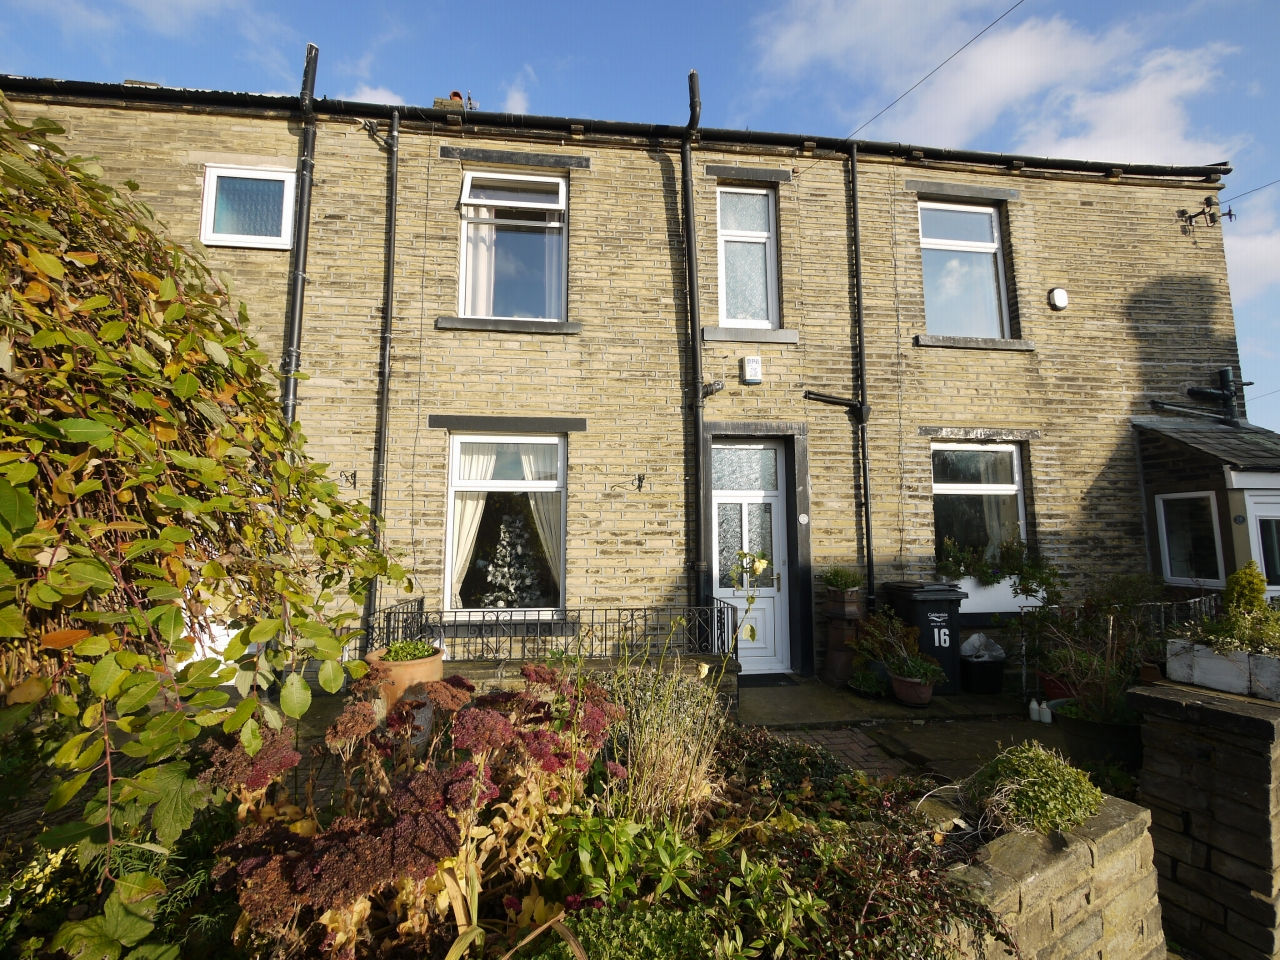 4 bedroom mid terraced house SSTC in Brighouse - Photograph 1.